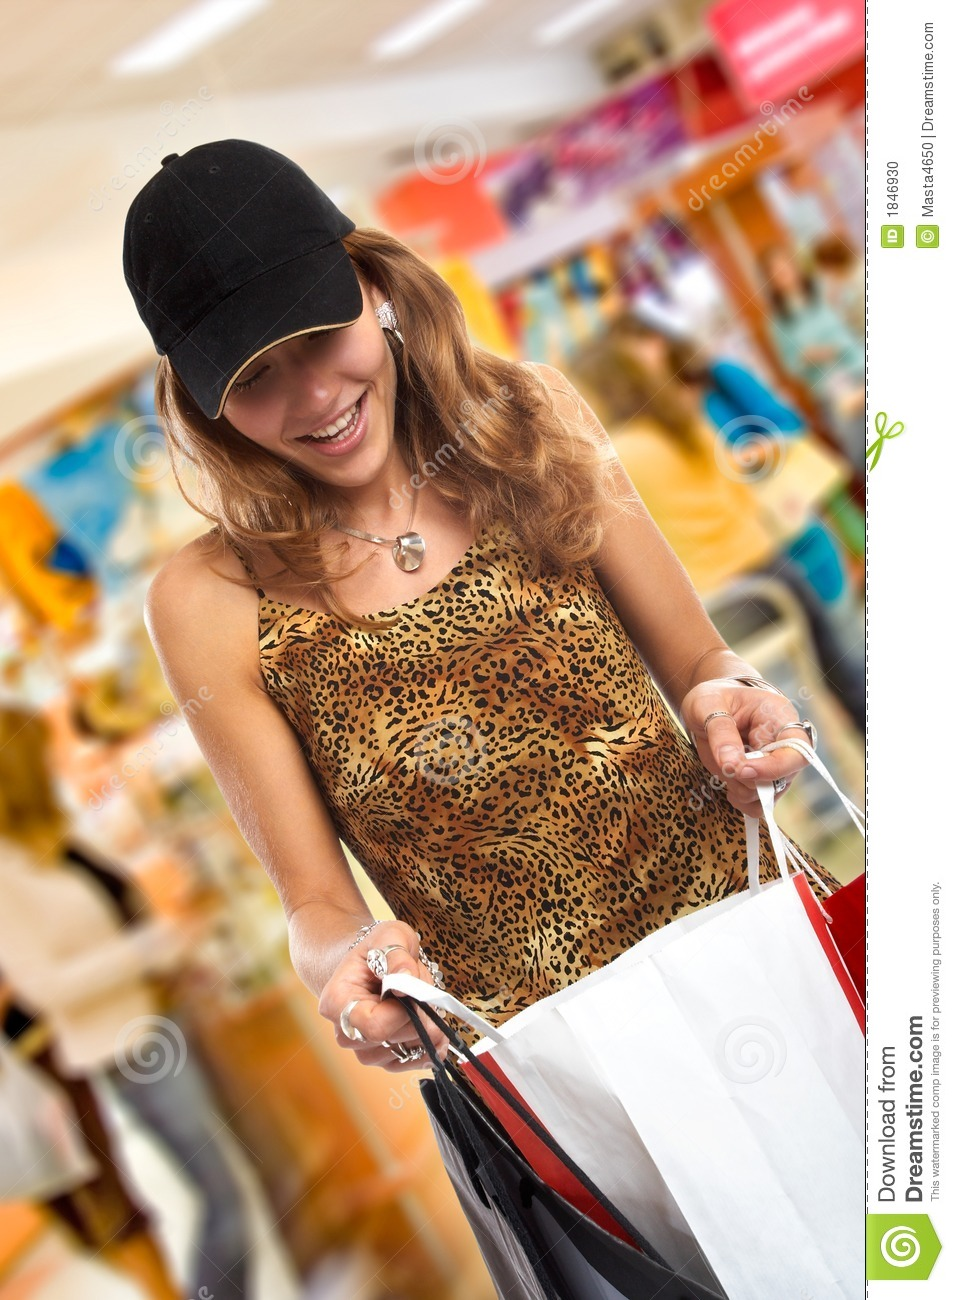 The shopping spree